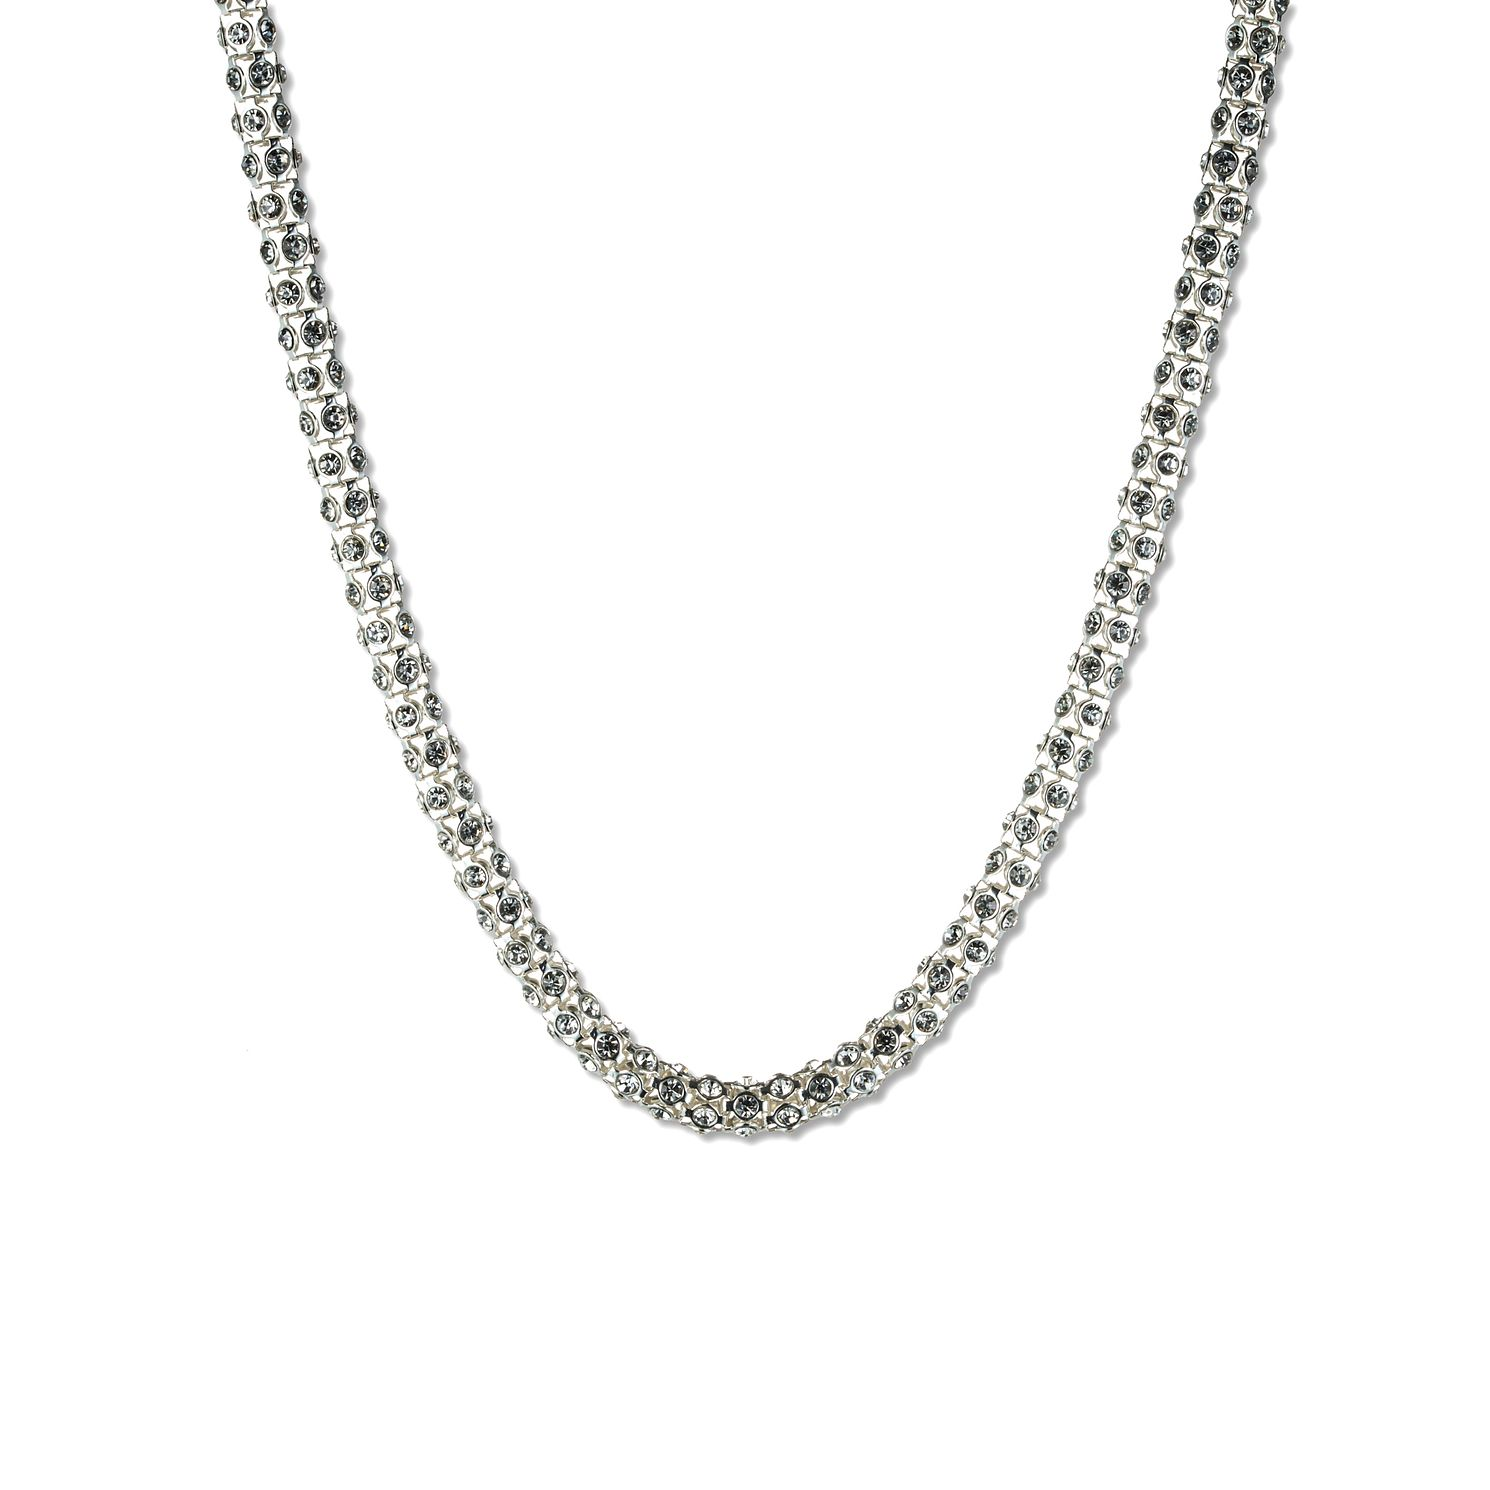 Annie Klein Silver Crystal Pave Necklace 16 incheses - Product number 1083376